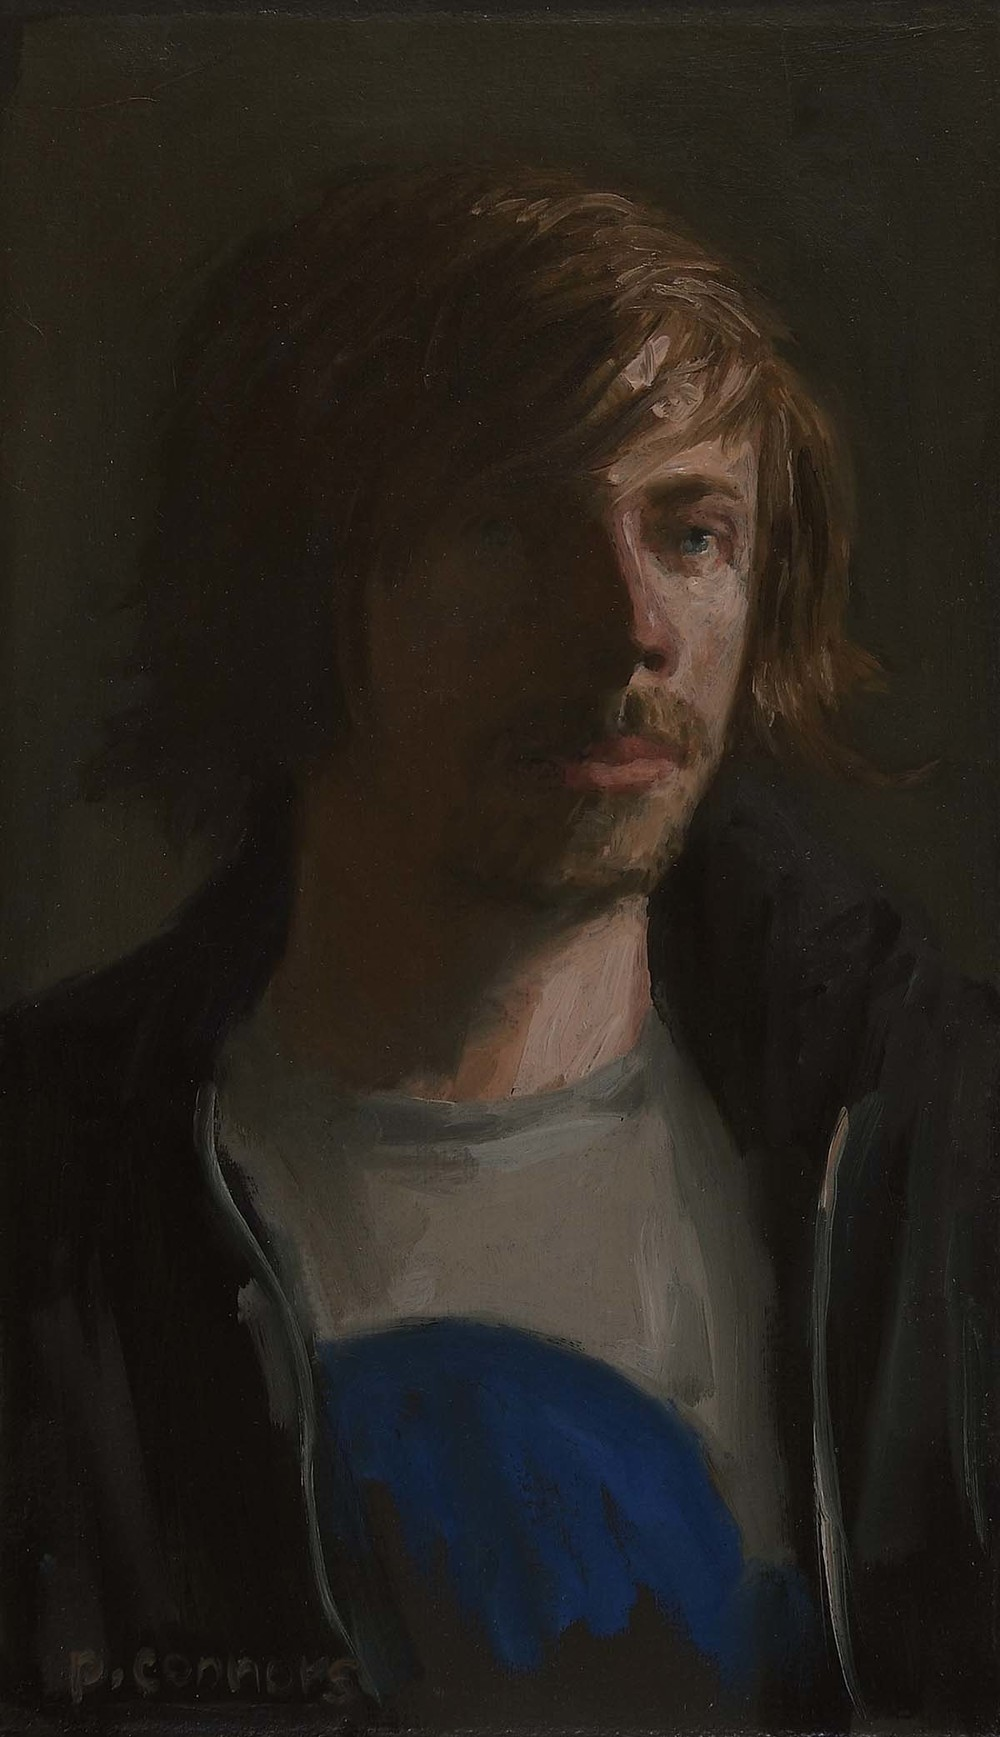 Portrait of L. C., 11.25 x 6.75 inches, oil on linen